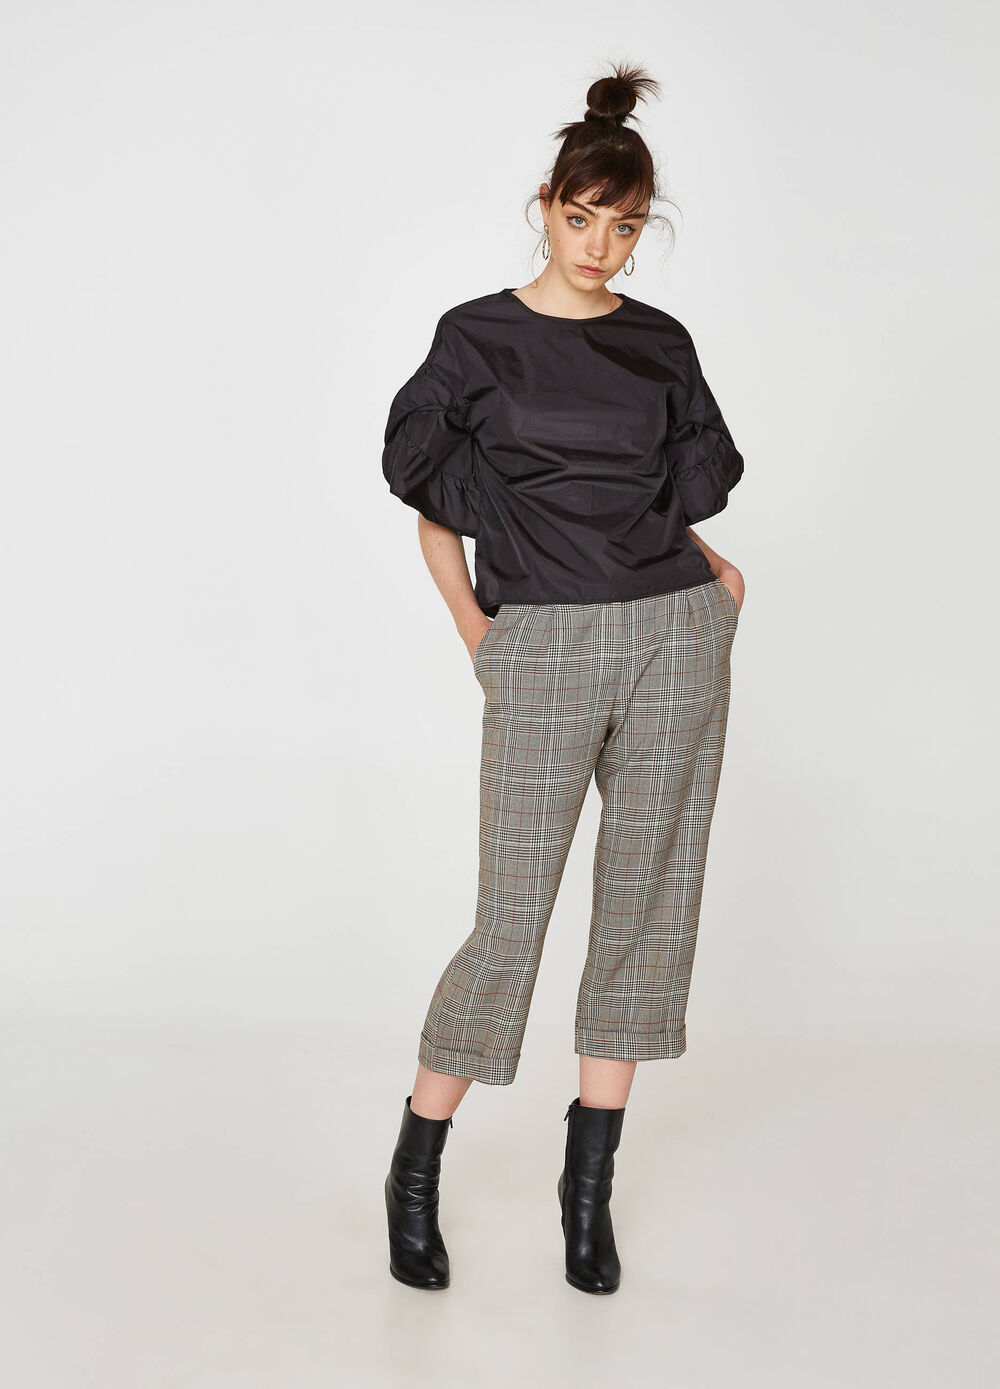 Pantaloni crop stretch a quadri